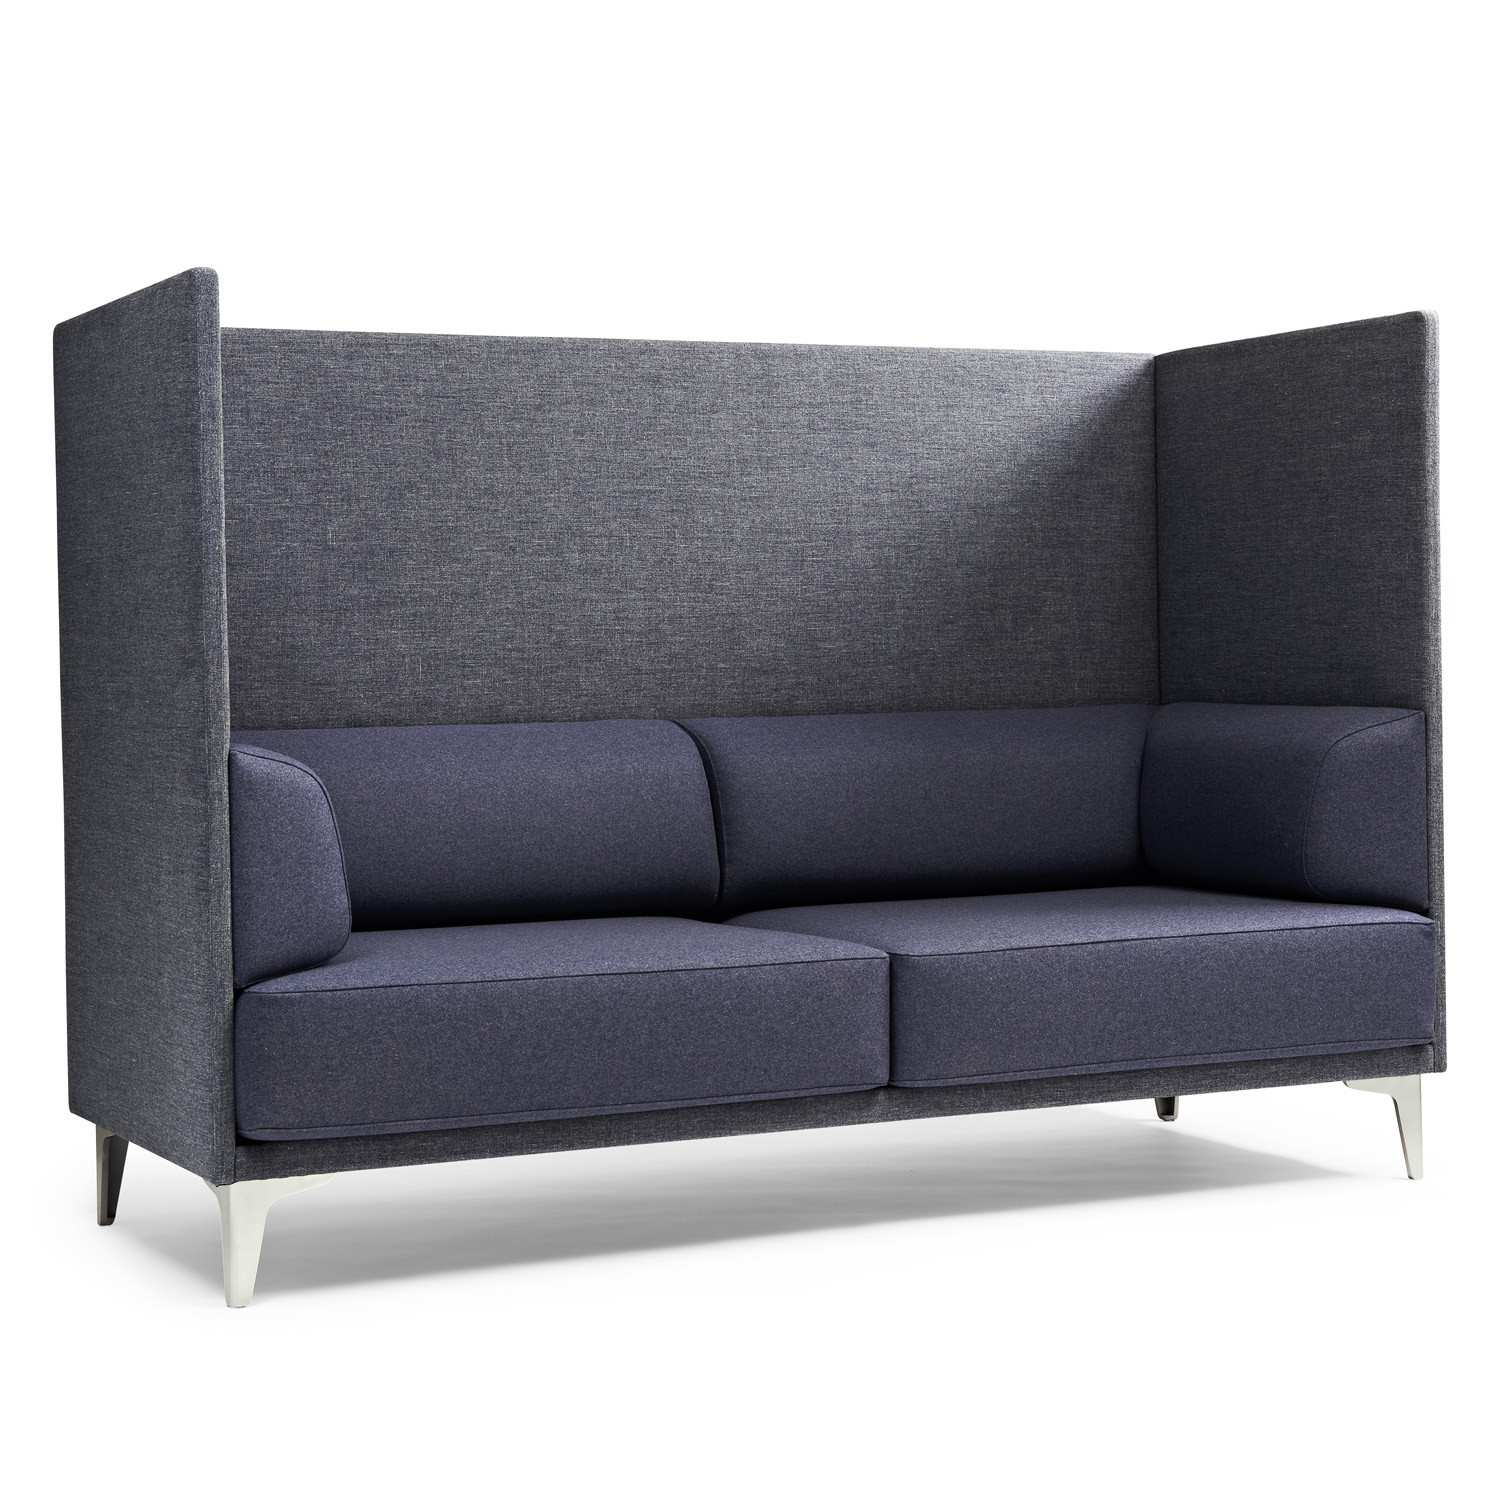 EJ 400B Apoluna Box Sofa